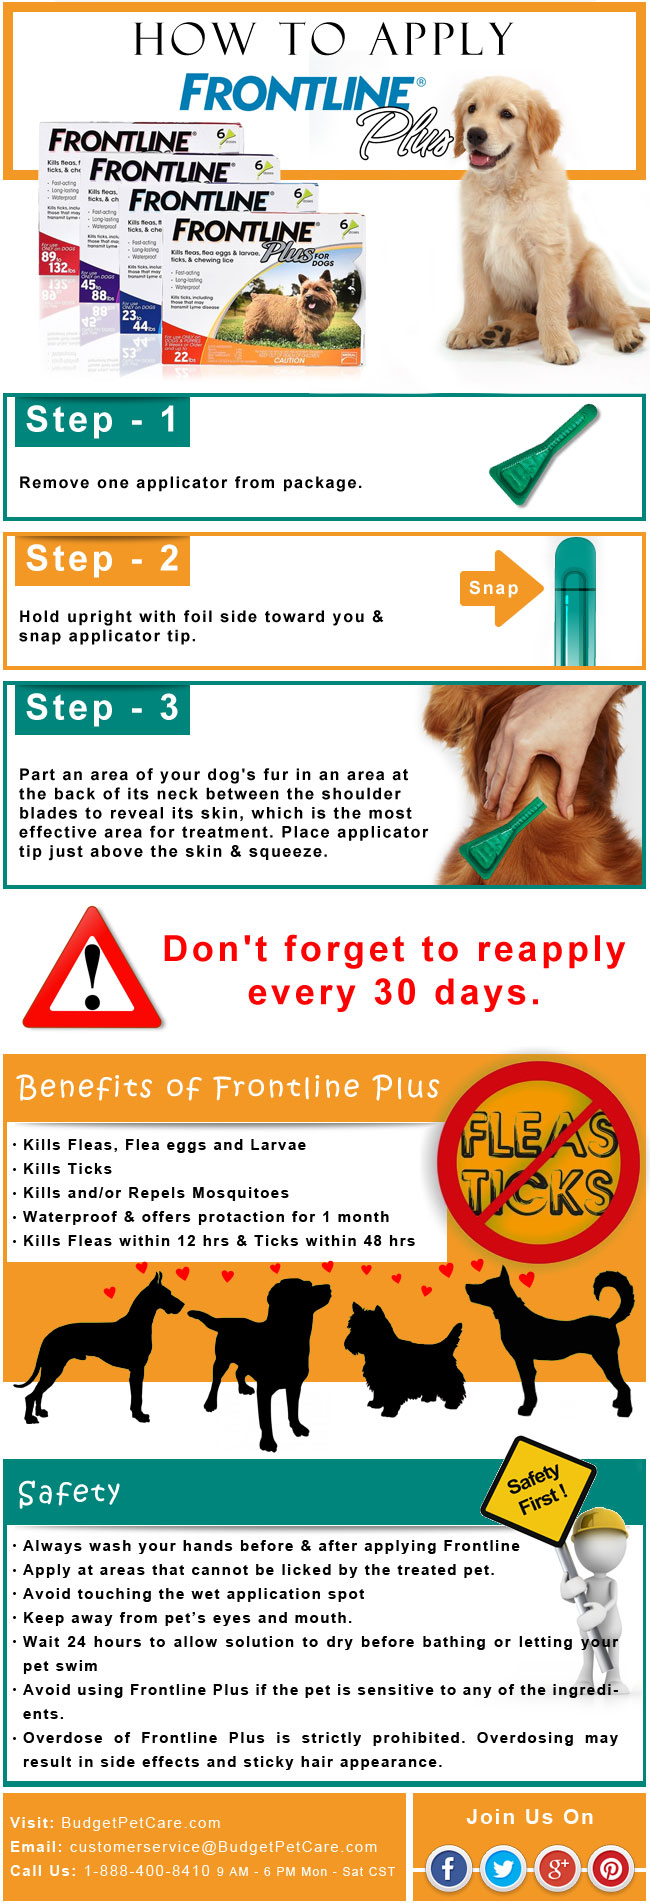 No More Fleas and Ticks: Apply Frontline Plus on Dogs - Infographic